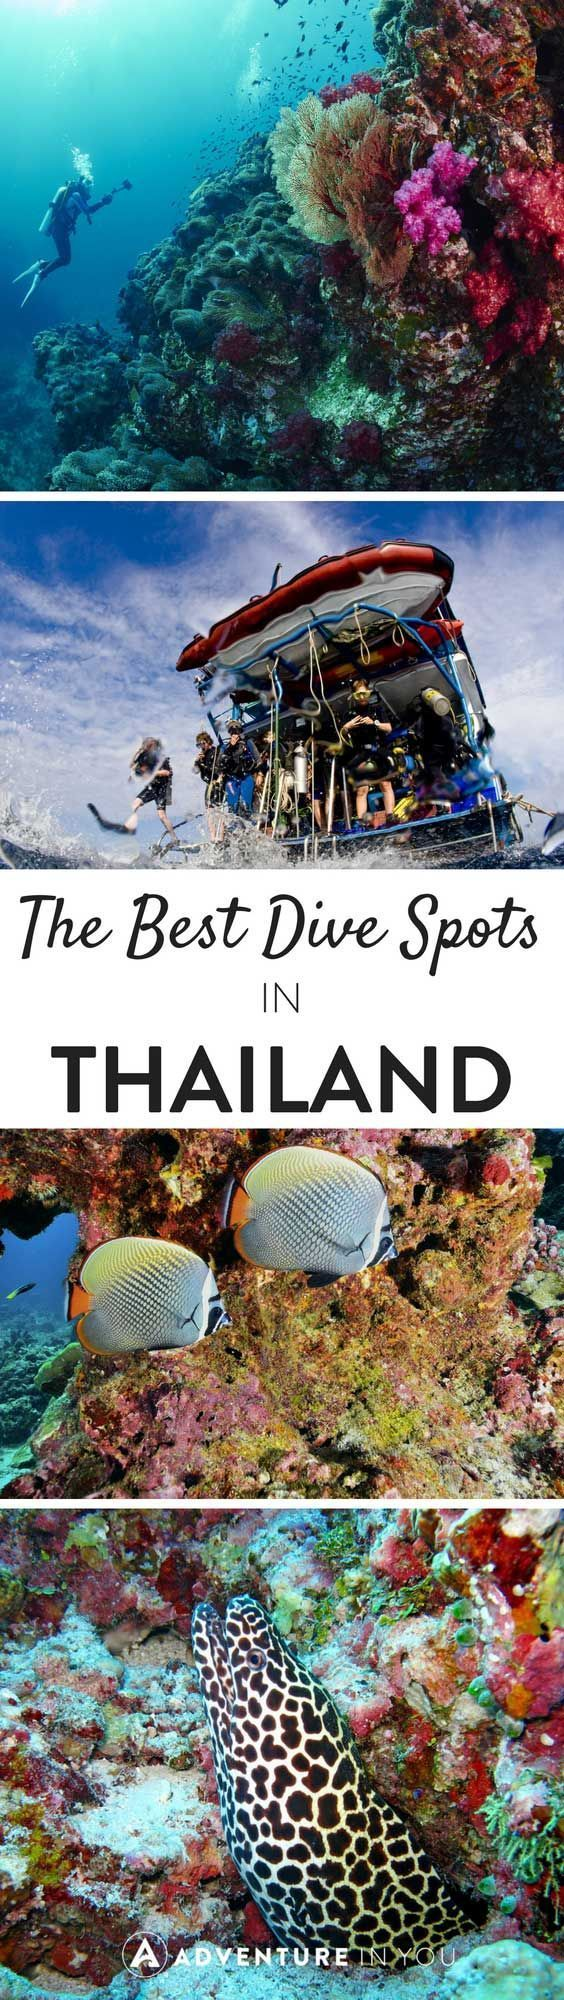 Planning to go scuba diving while traveling through Thailand? Here are recommendations for the MUST DIVE spots in the area.